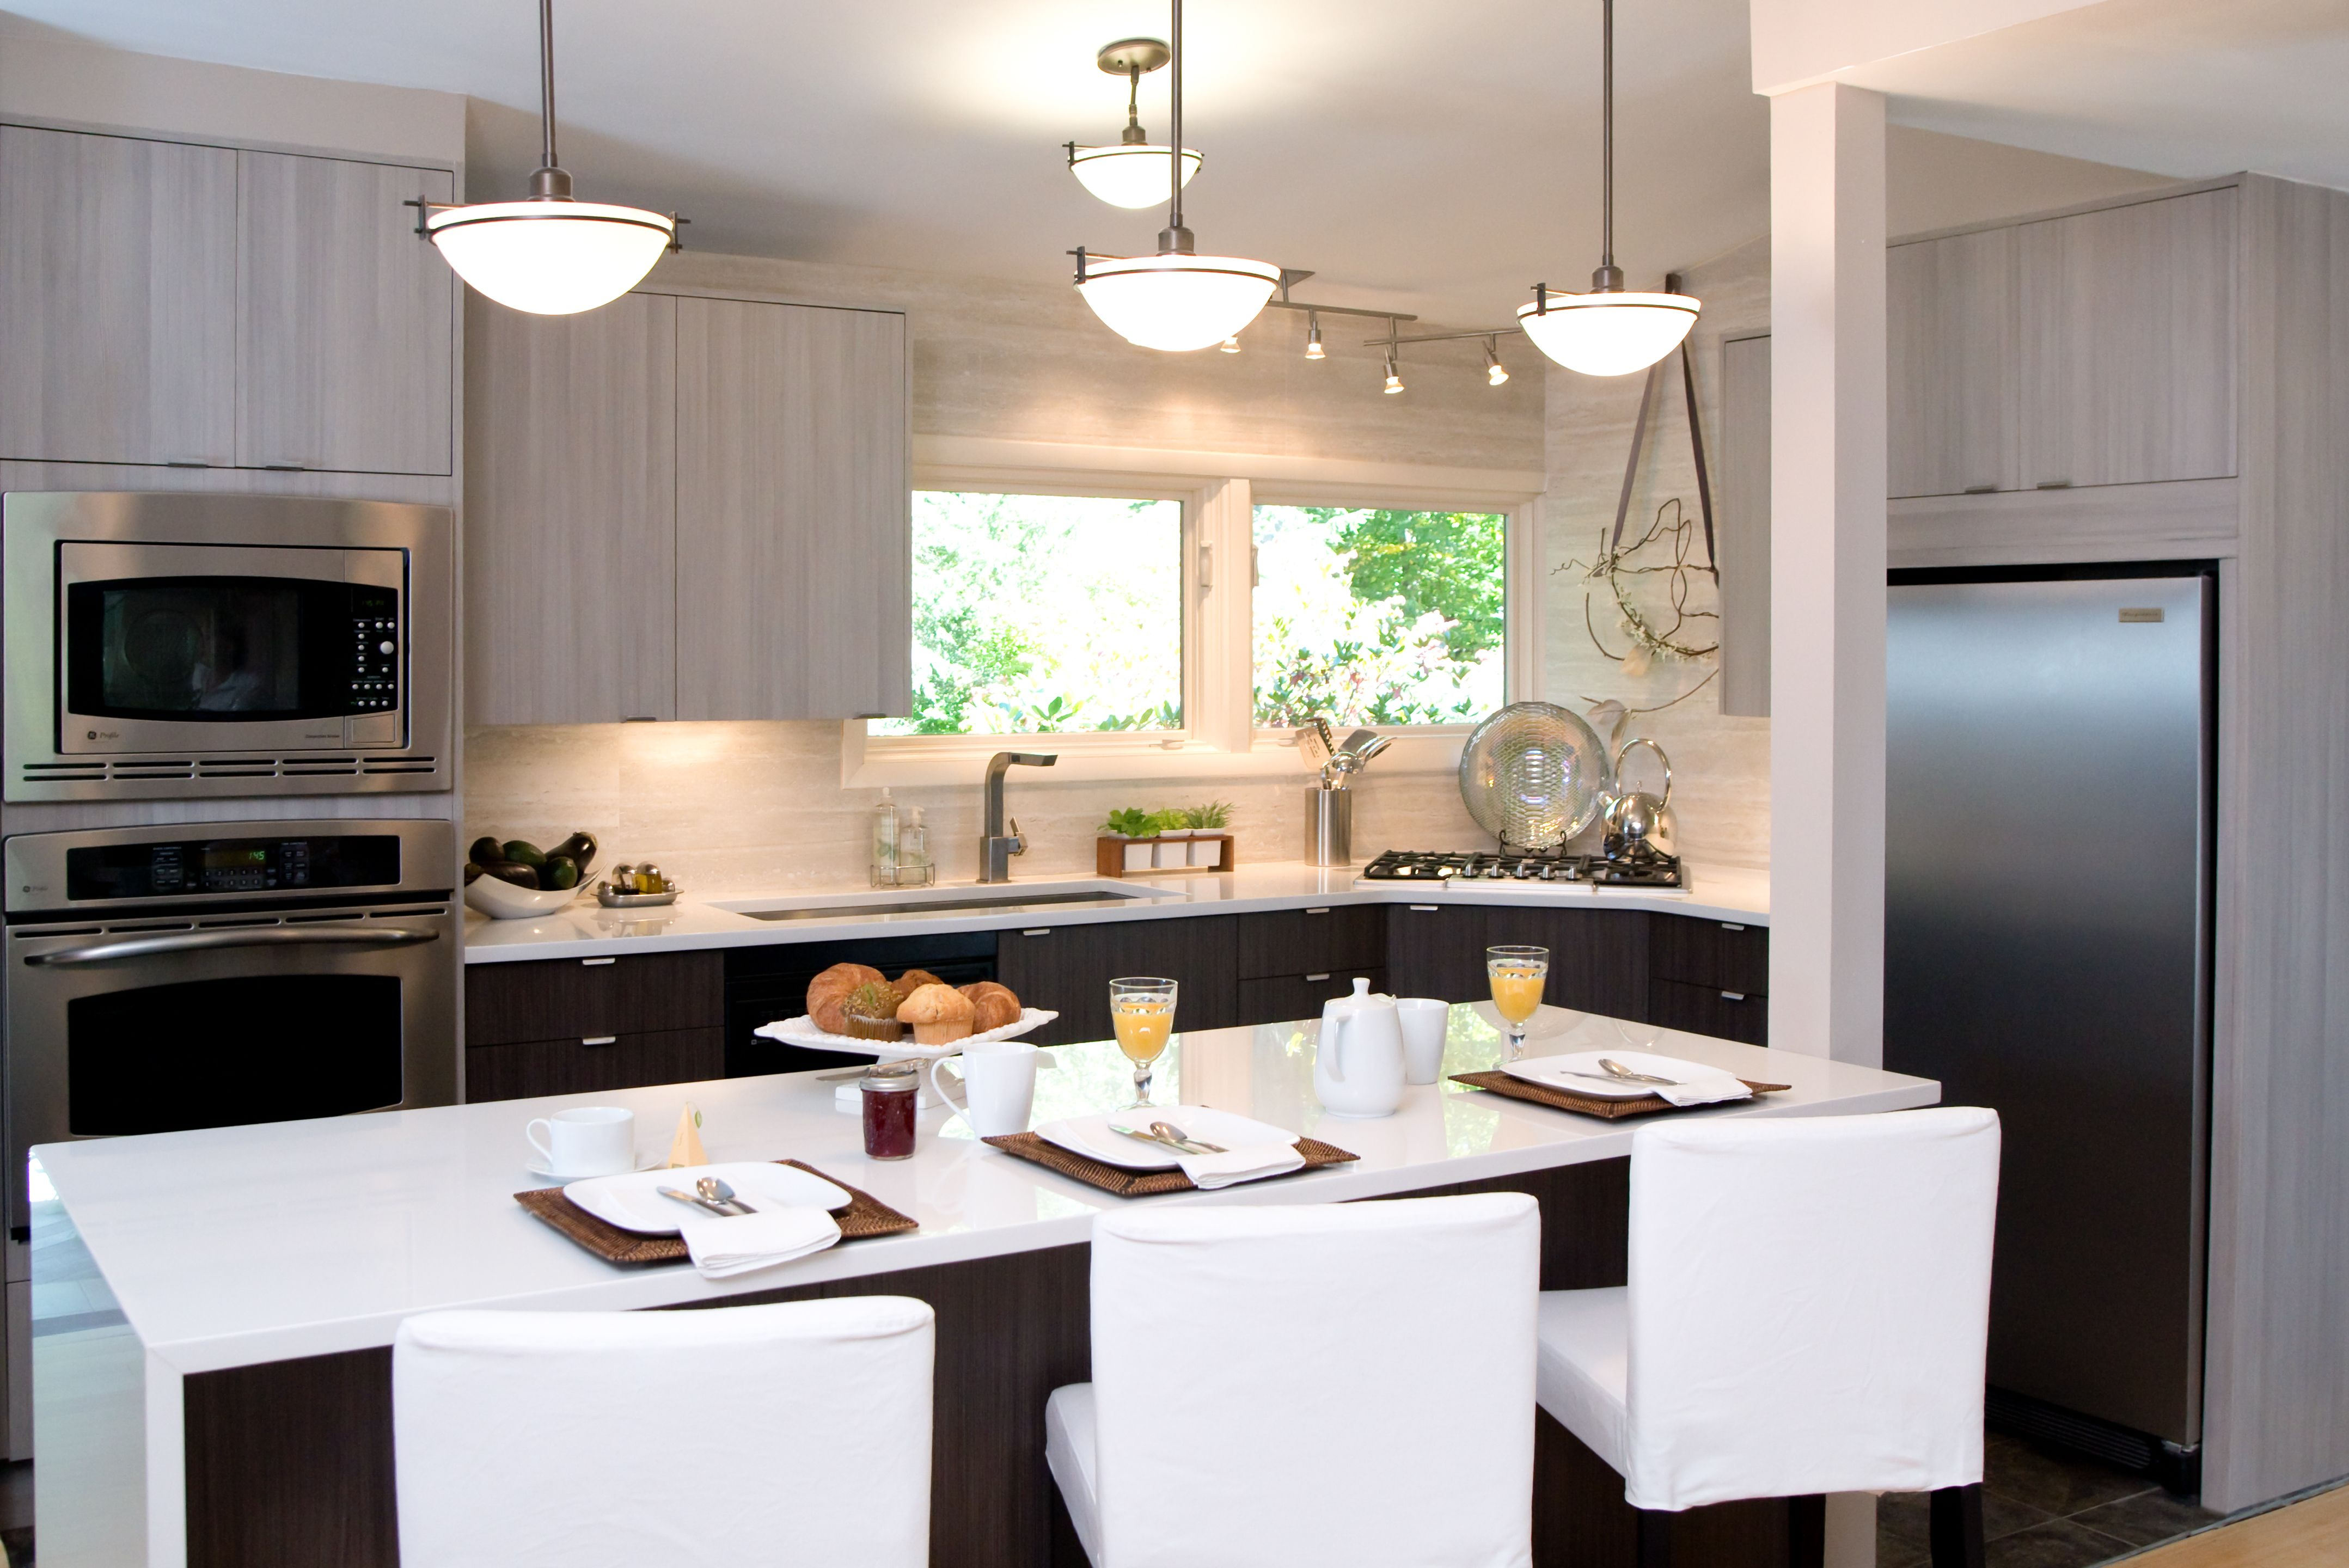 Cozy Contemporary Kitchen In Albany Ny Contemporary Kitchen Cabinetry Design Kitchen Redo